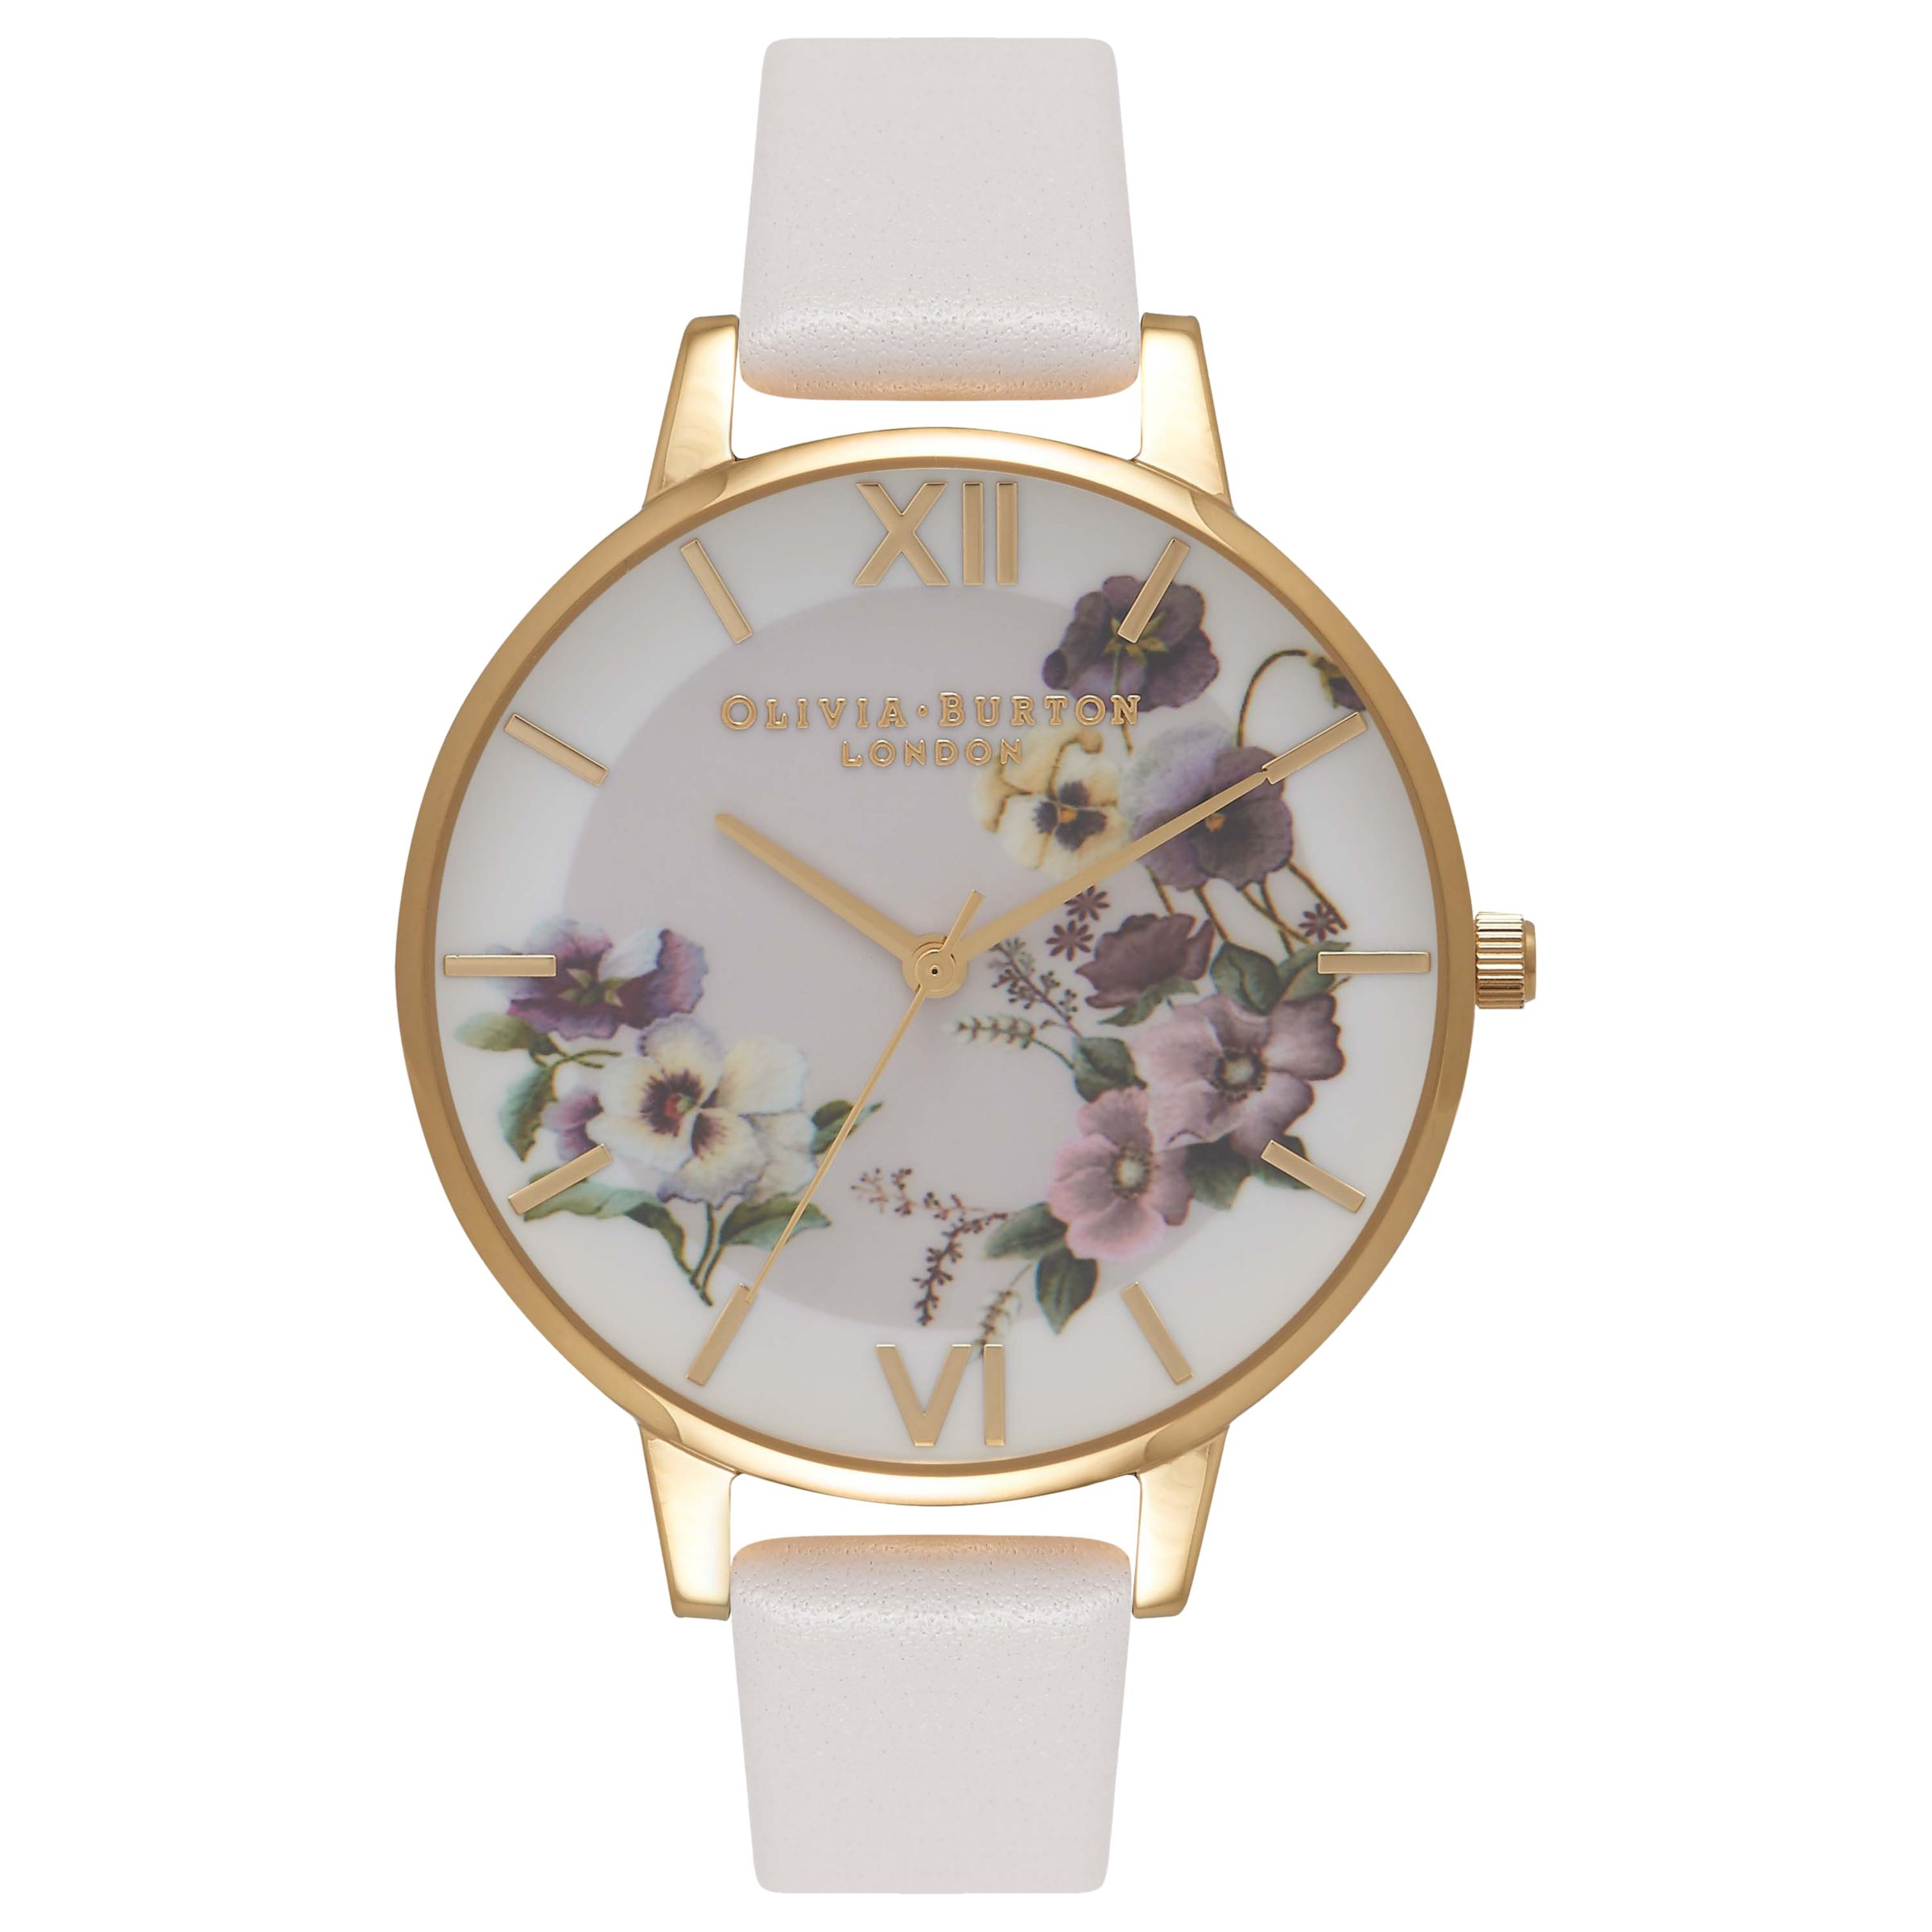 Olivia Burton Olivia Burton OB16FS86 Women's Florals Embroidery Pansy Leather Strap Watch, Blush